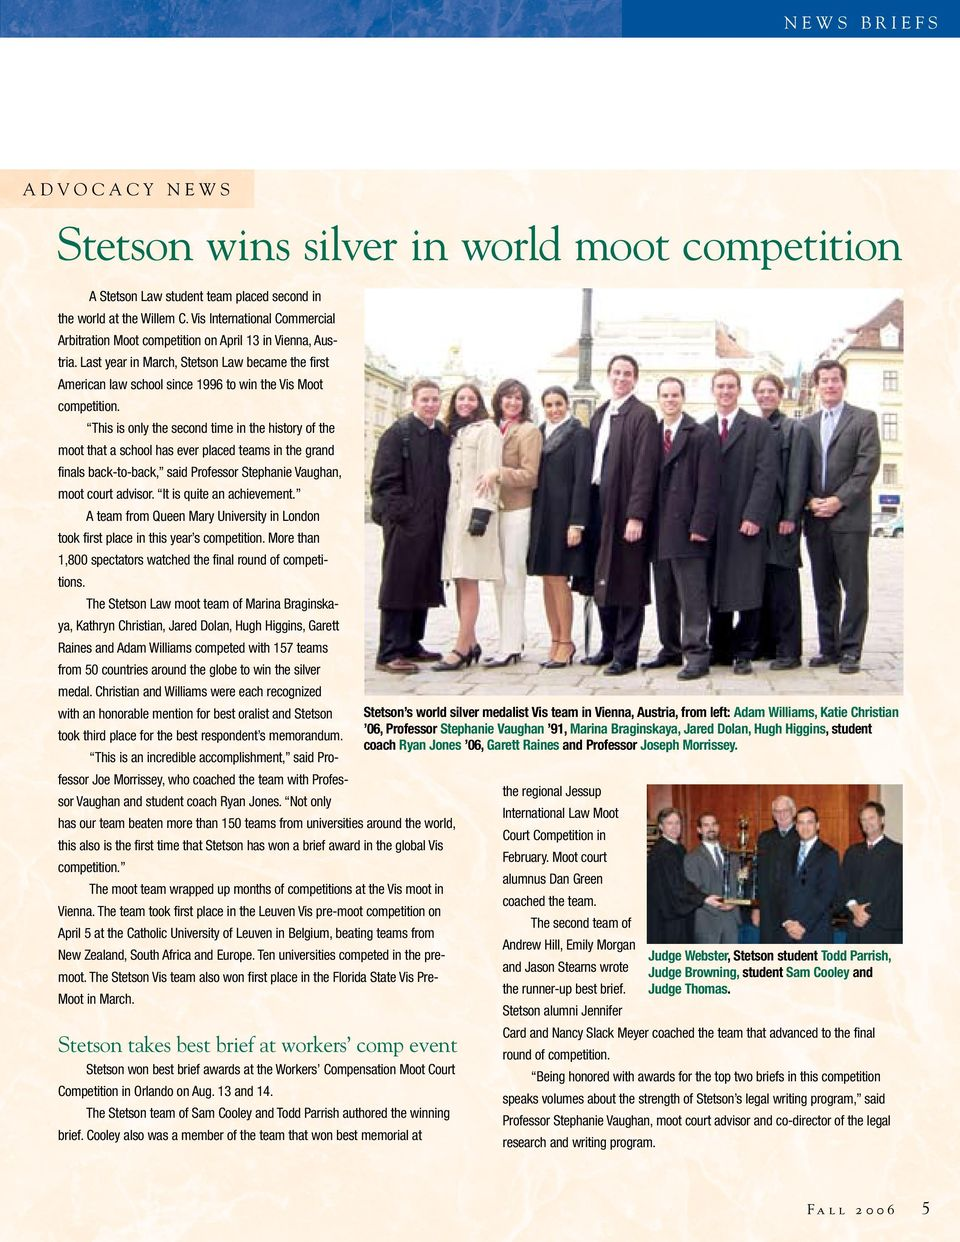 Last year in March, Stetson Law became the first American law school since 1996 to win the Vis Moot competition.